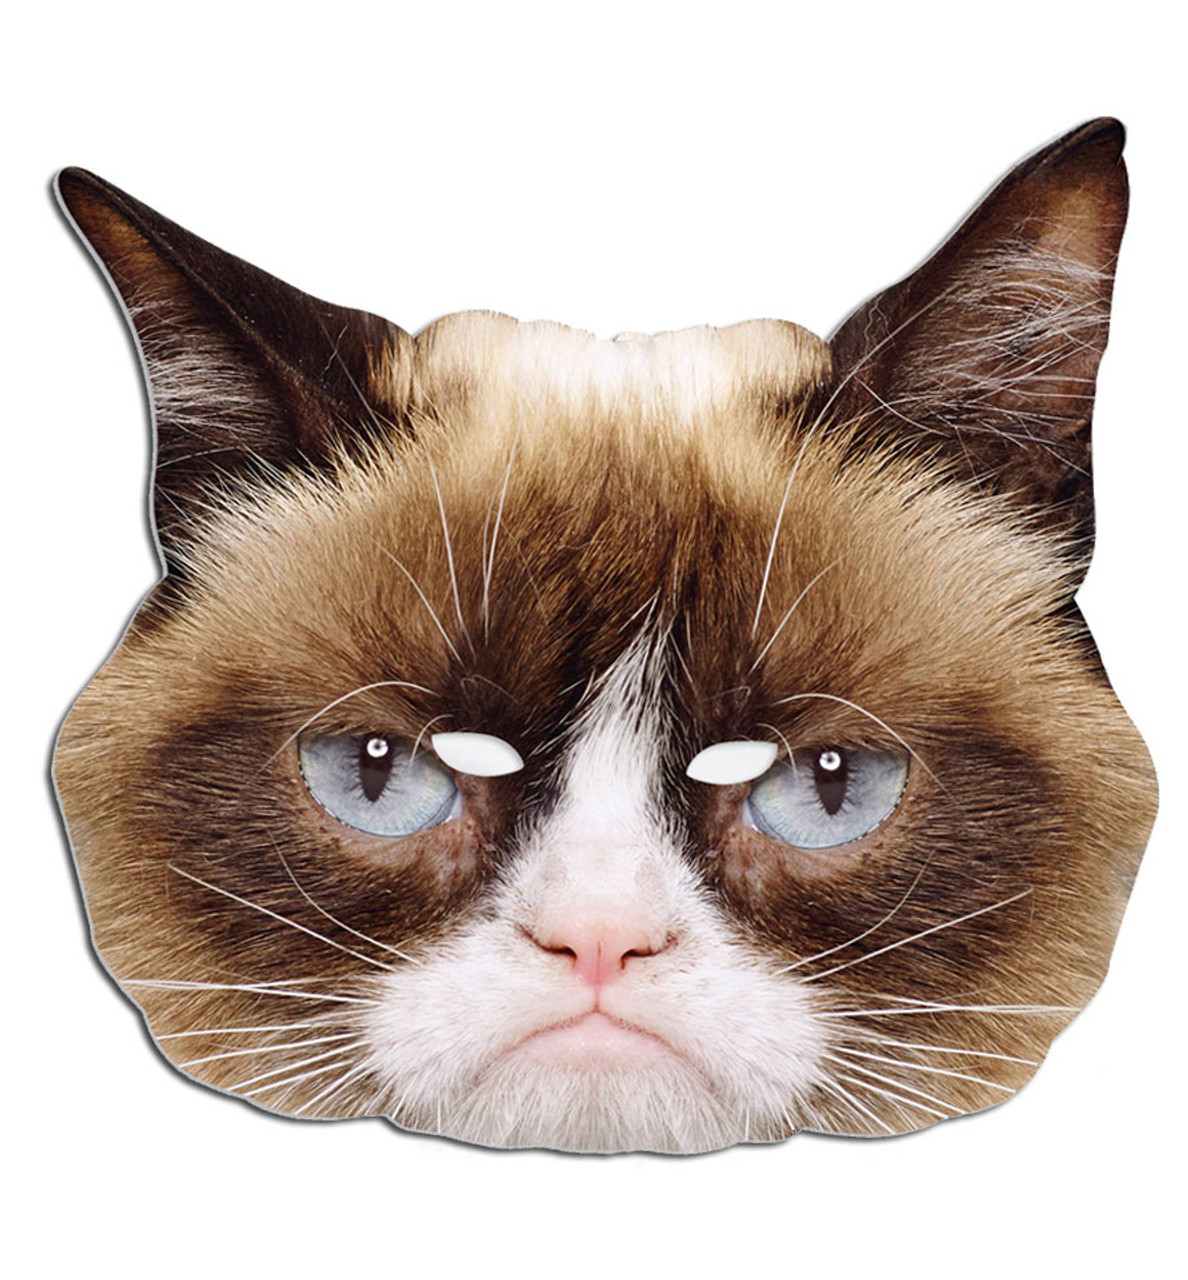 grumpy cat single card party face mask in stock now with free uk